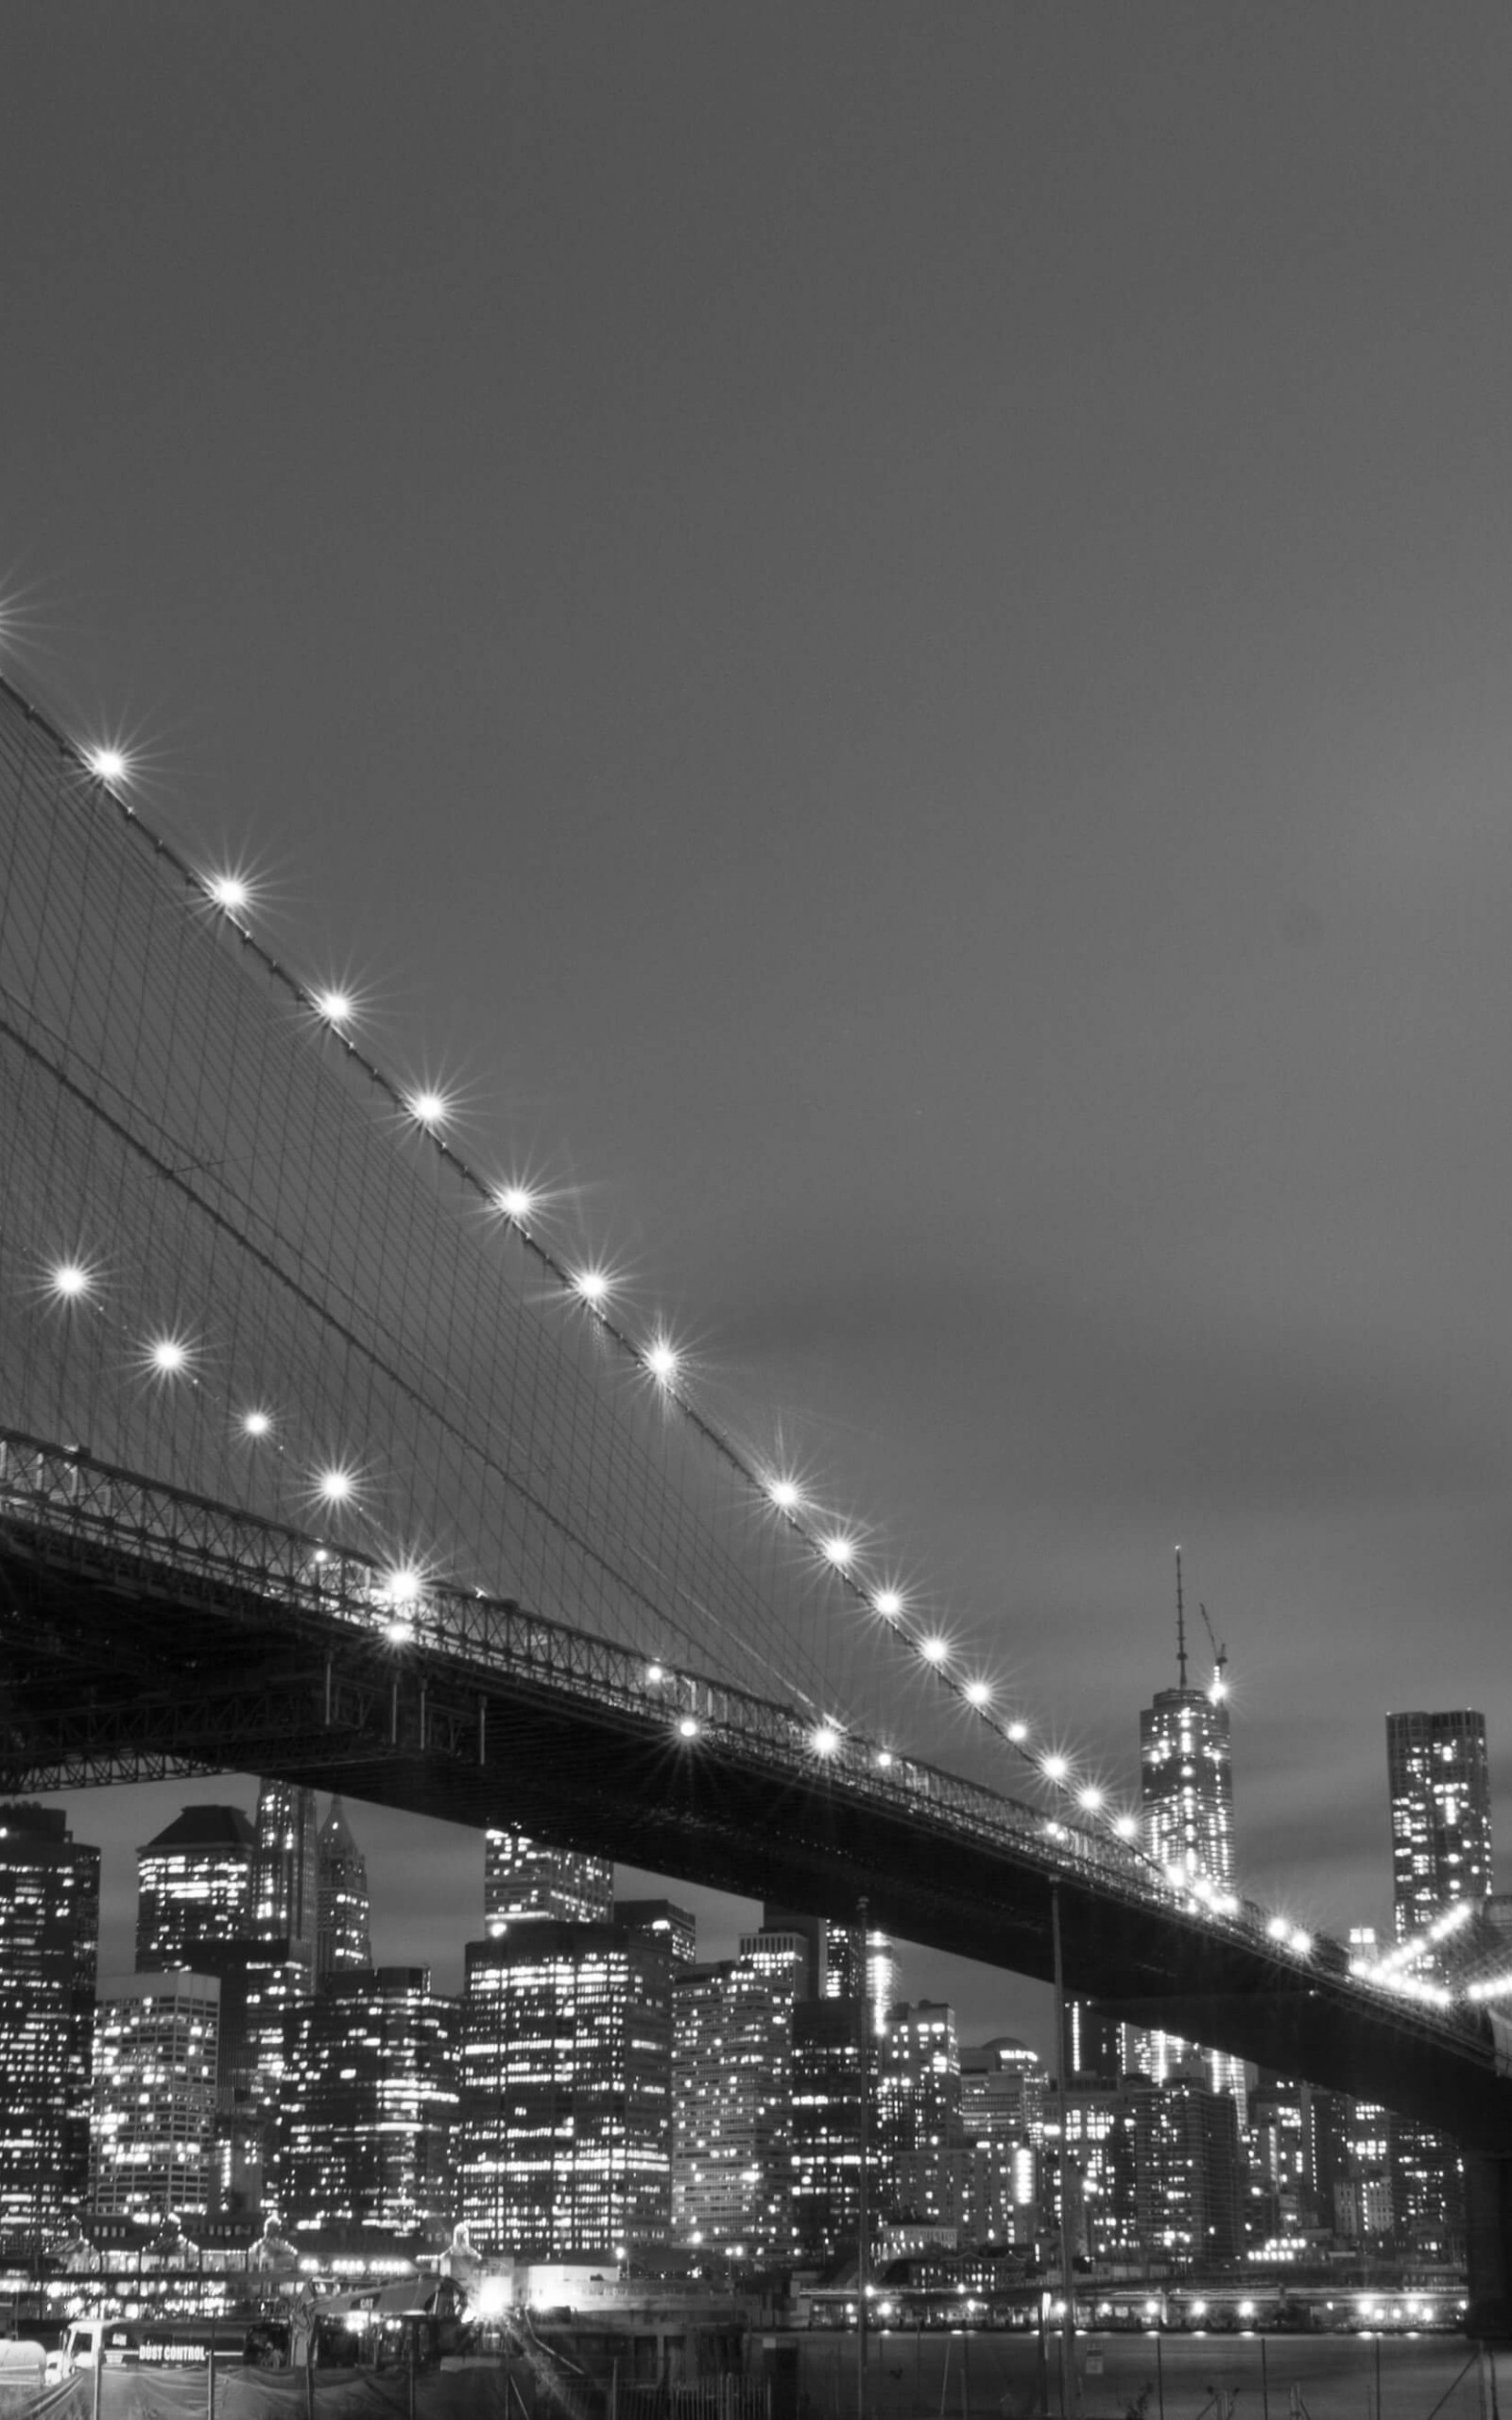 Brooklyn Bridge, New York City in Black & White Wallpaper for Amazon Kindle Fire HDX 8.9